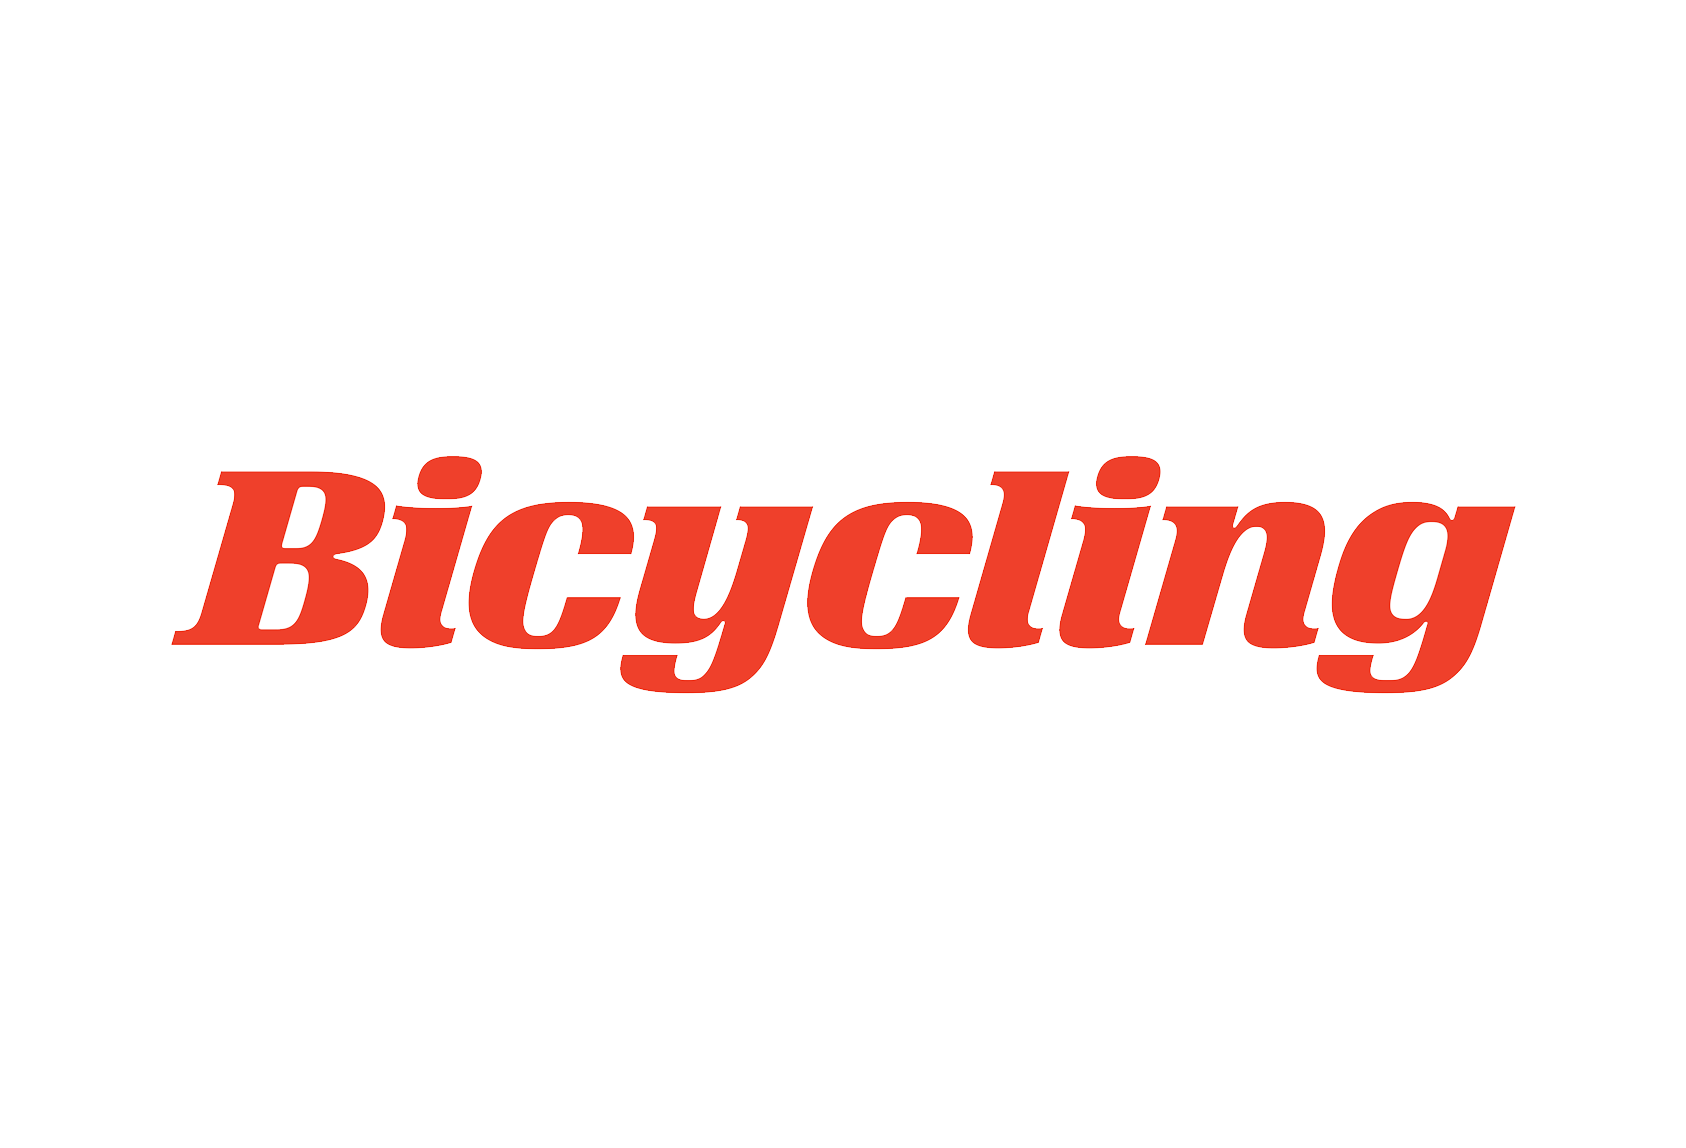 bicycling-logo